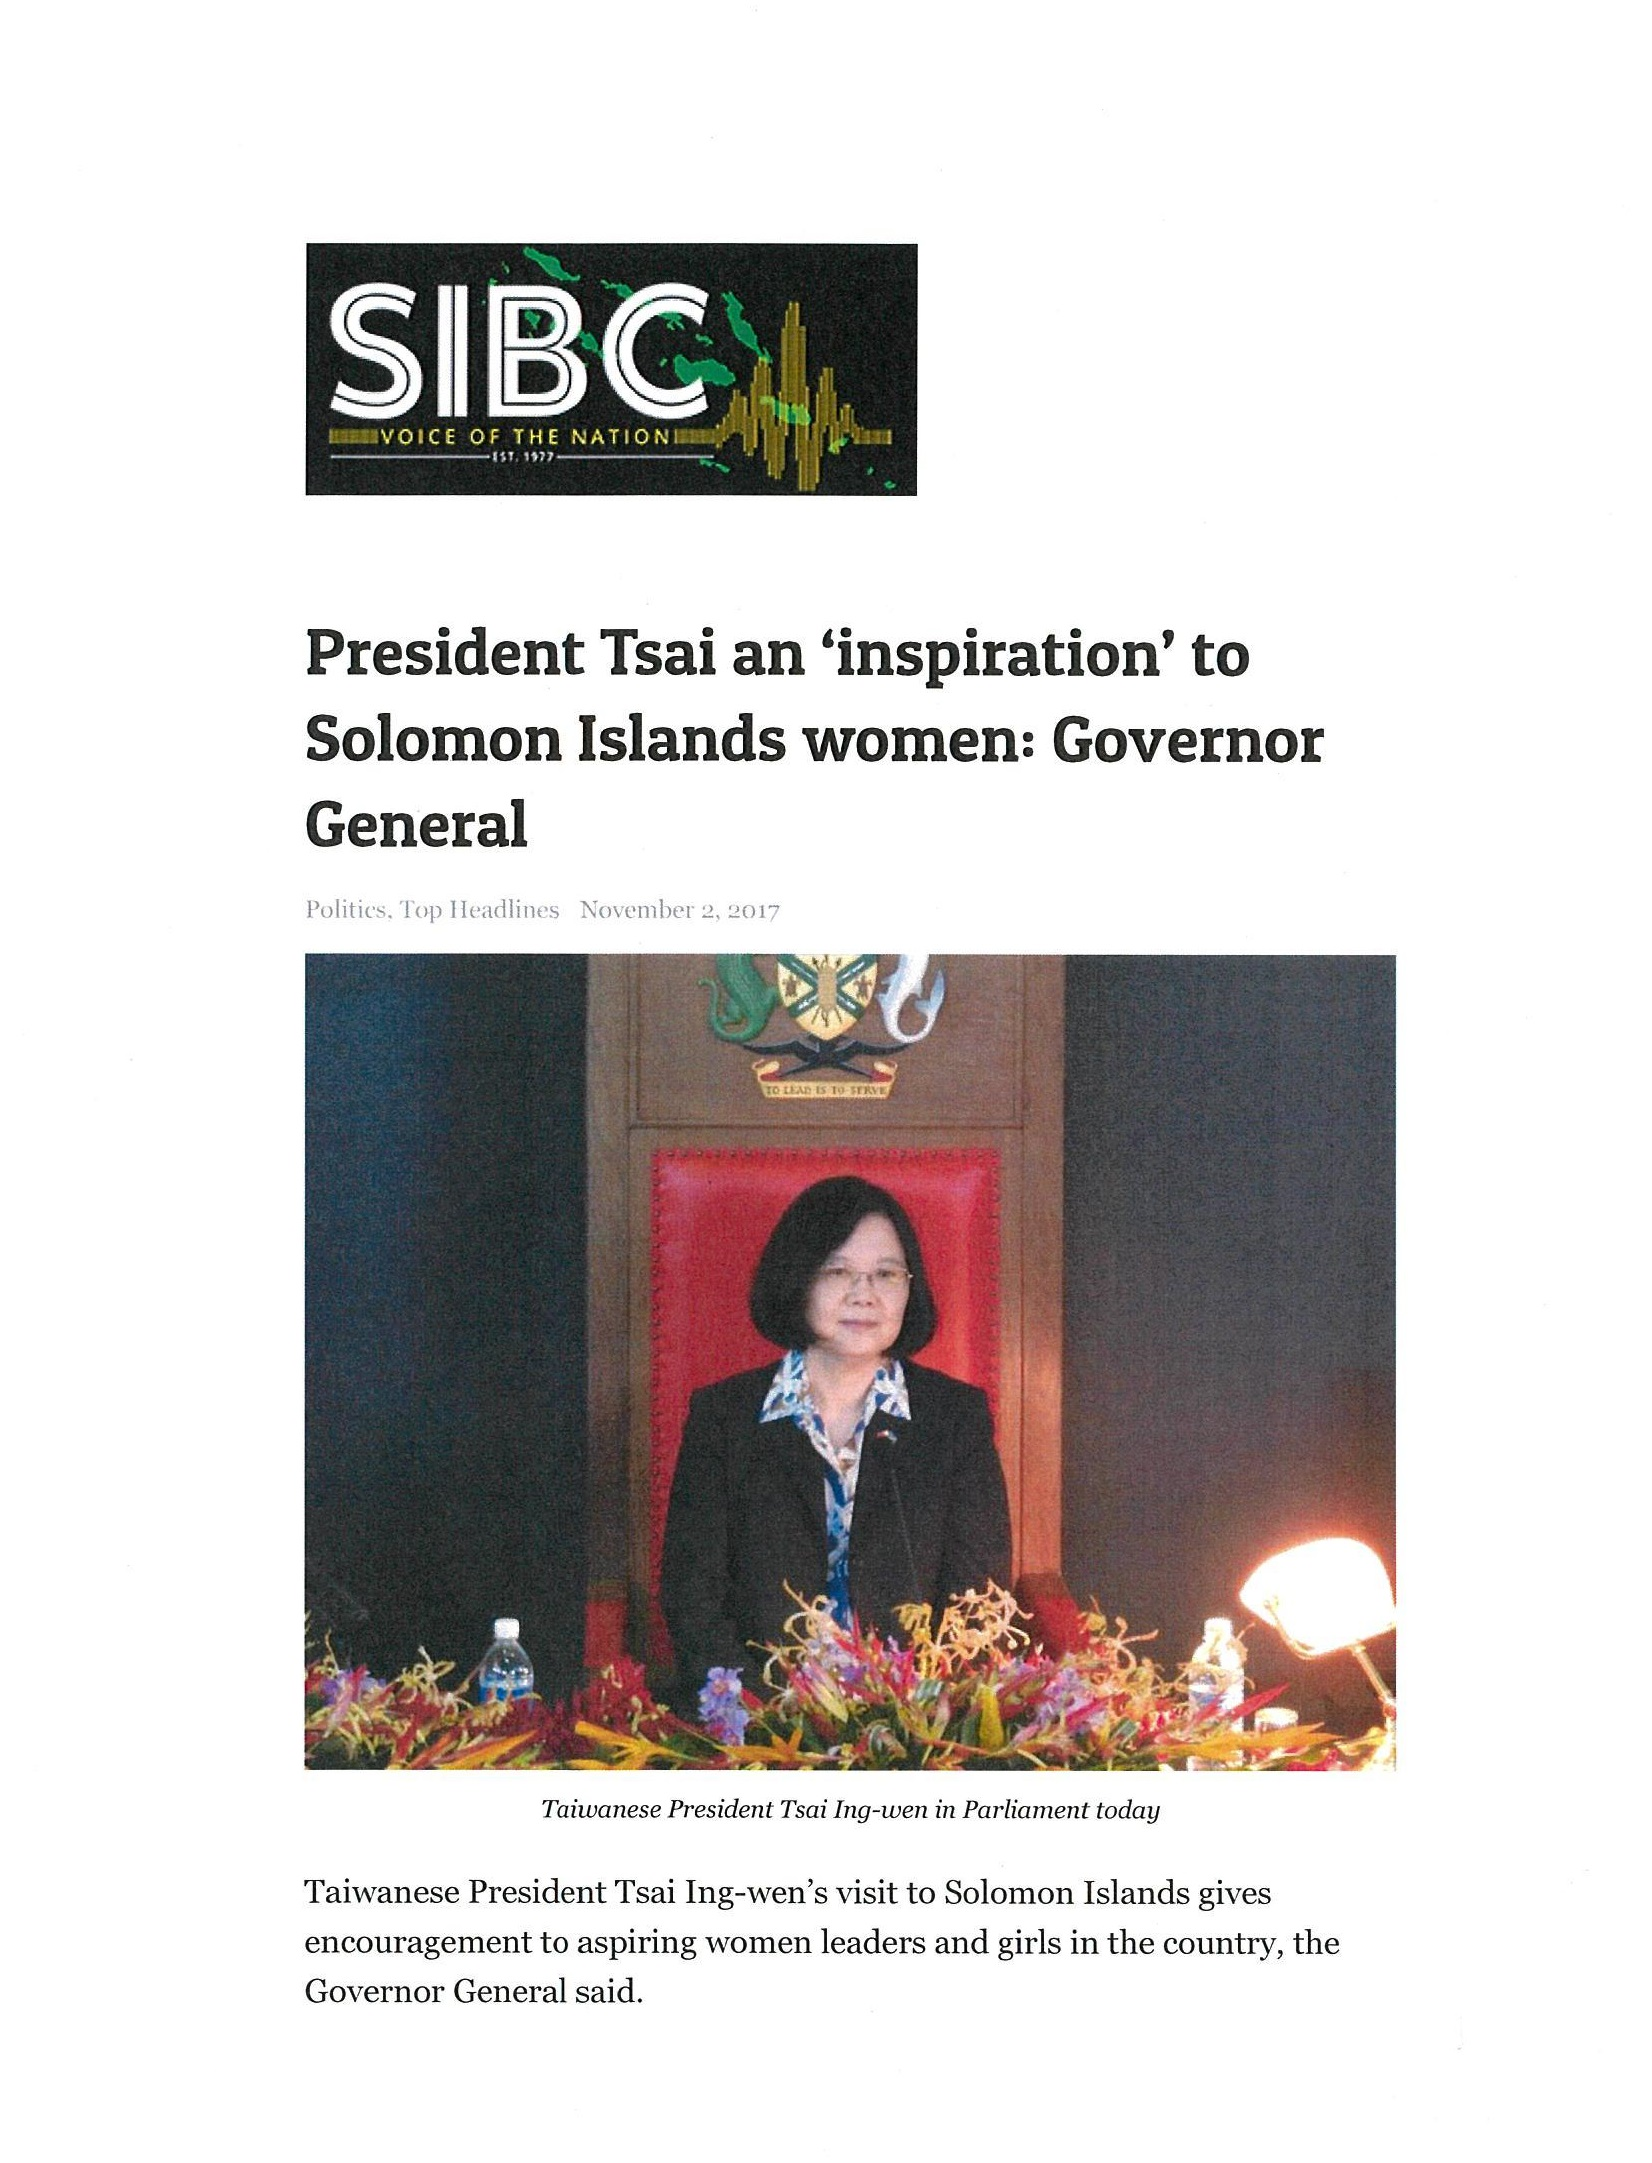 President Tsai an 'inspiration' to Solomon Islands women: Governor General